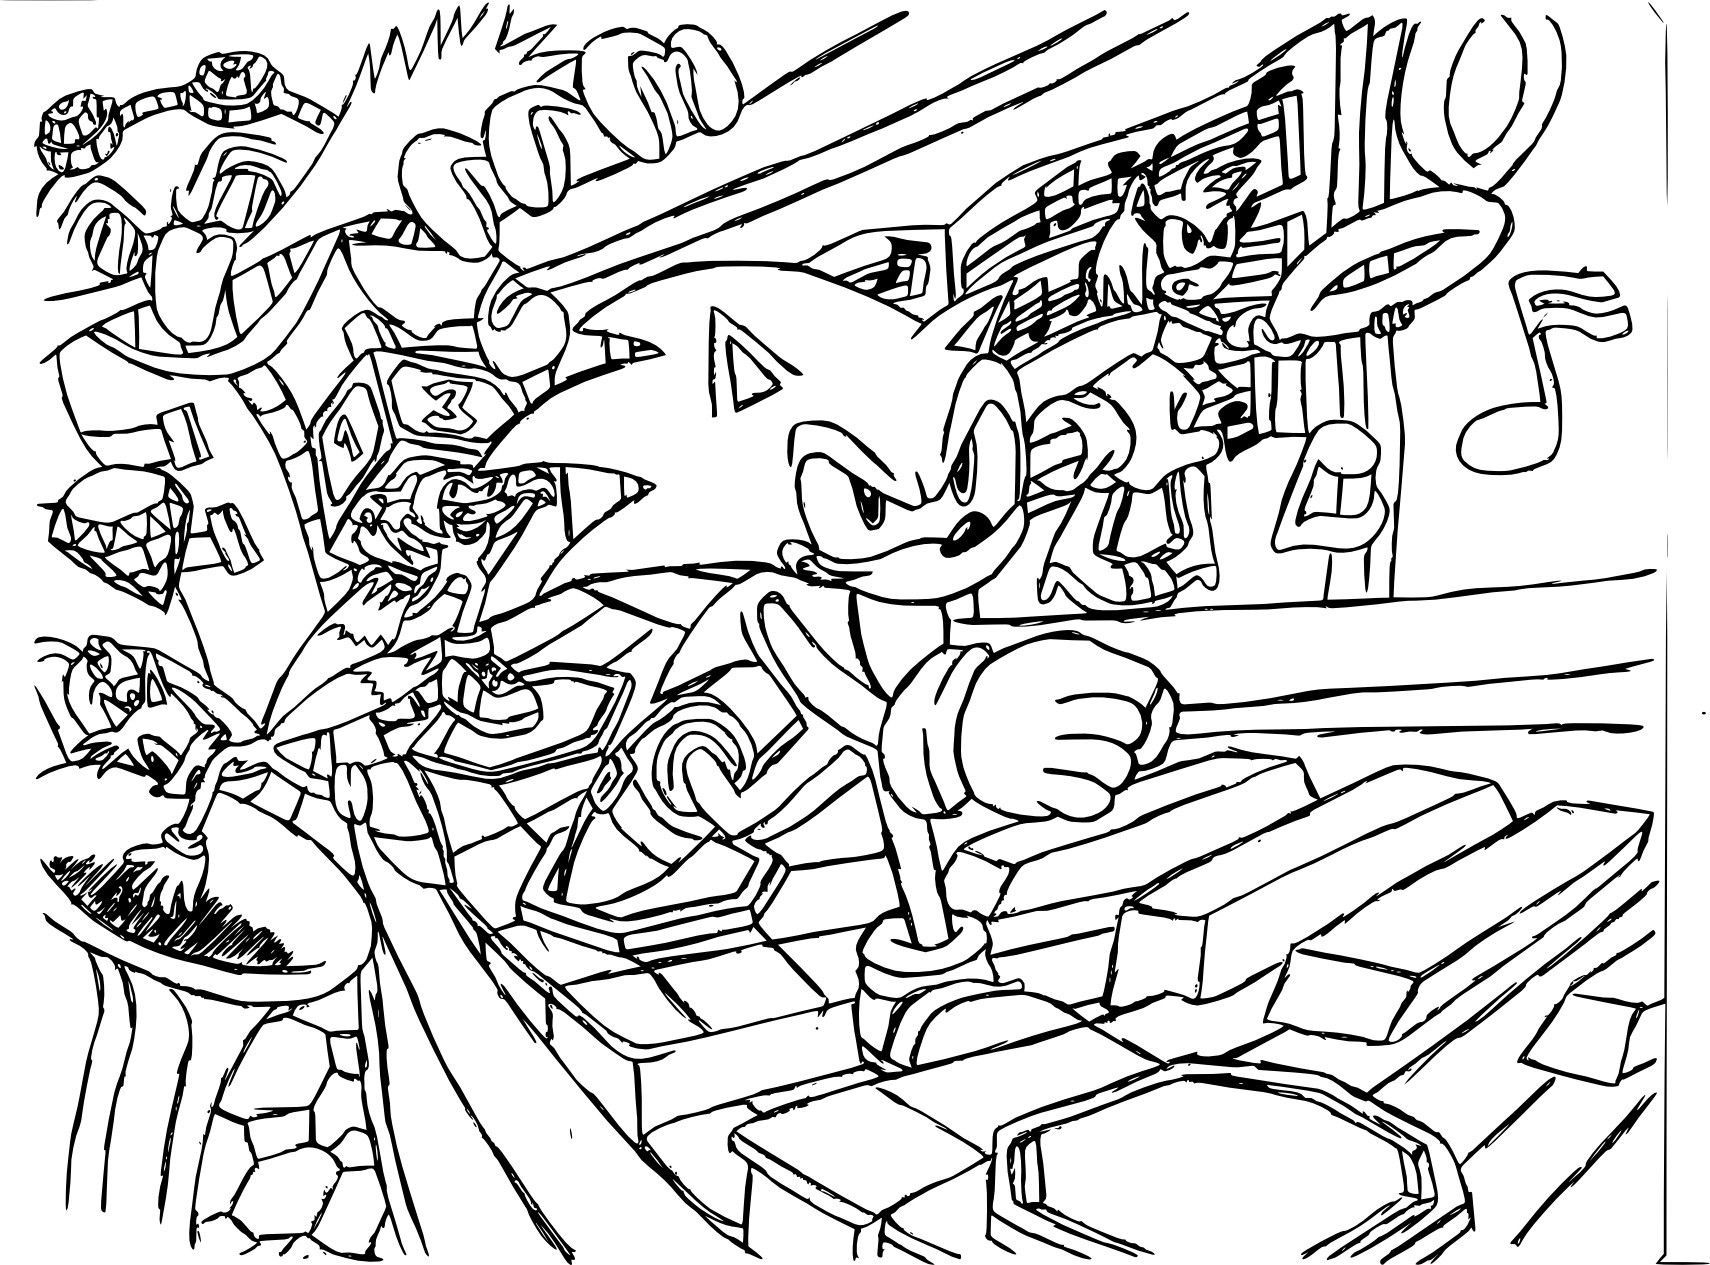 Sonic World Coloring Pages Sonic Lost World Coloring Pages Sonic World Coloring Pages Christmas Coloring Pages Coloring Pages Coloring Pictures For Kids